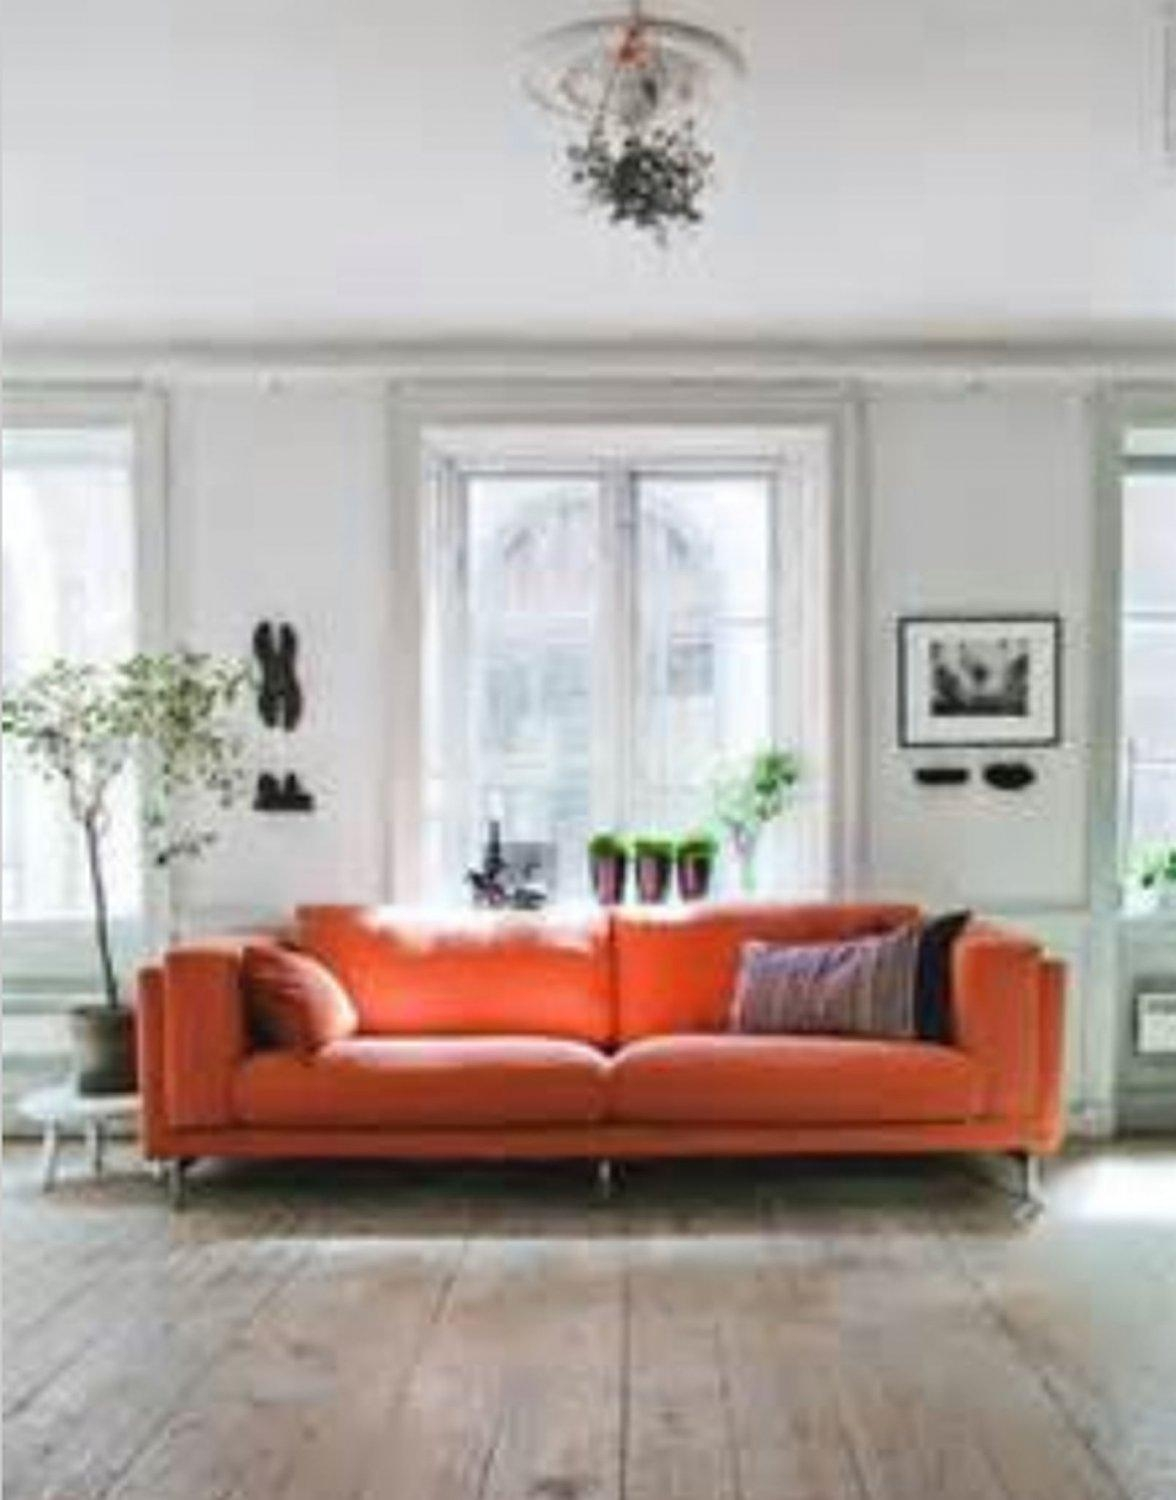 Ikea Nockeby 3 Seat Sofa Slipcover Cover Risane Orange Linen Blend Intended For Orange Ikea Sofas (View 18 of 20)